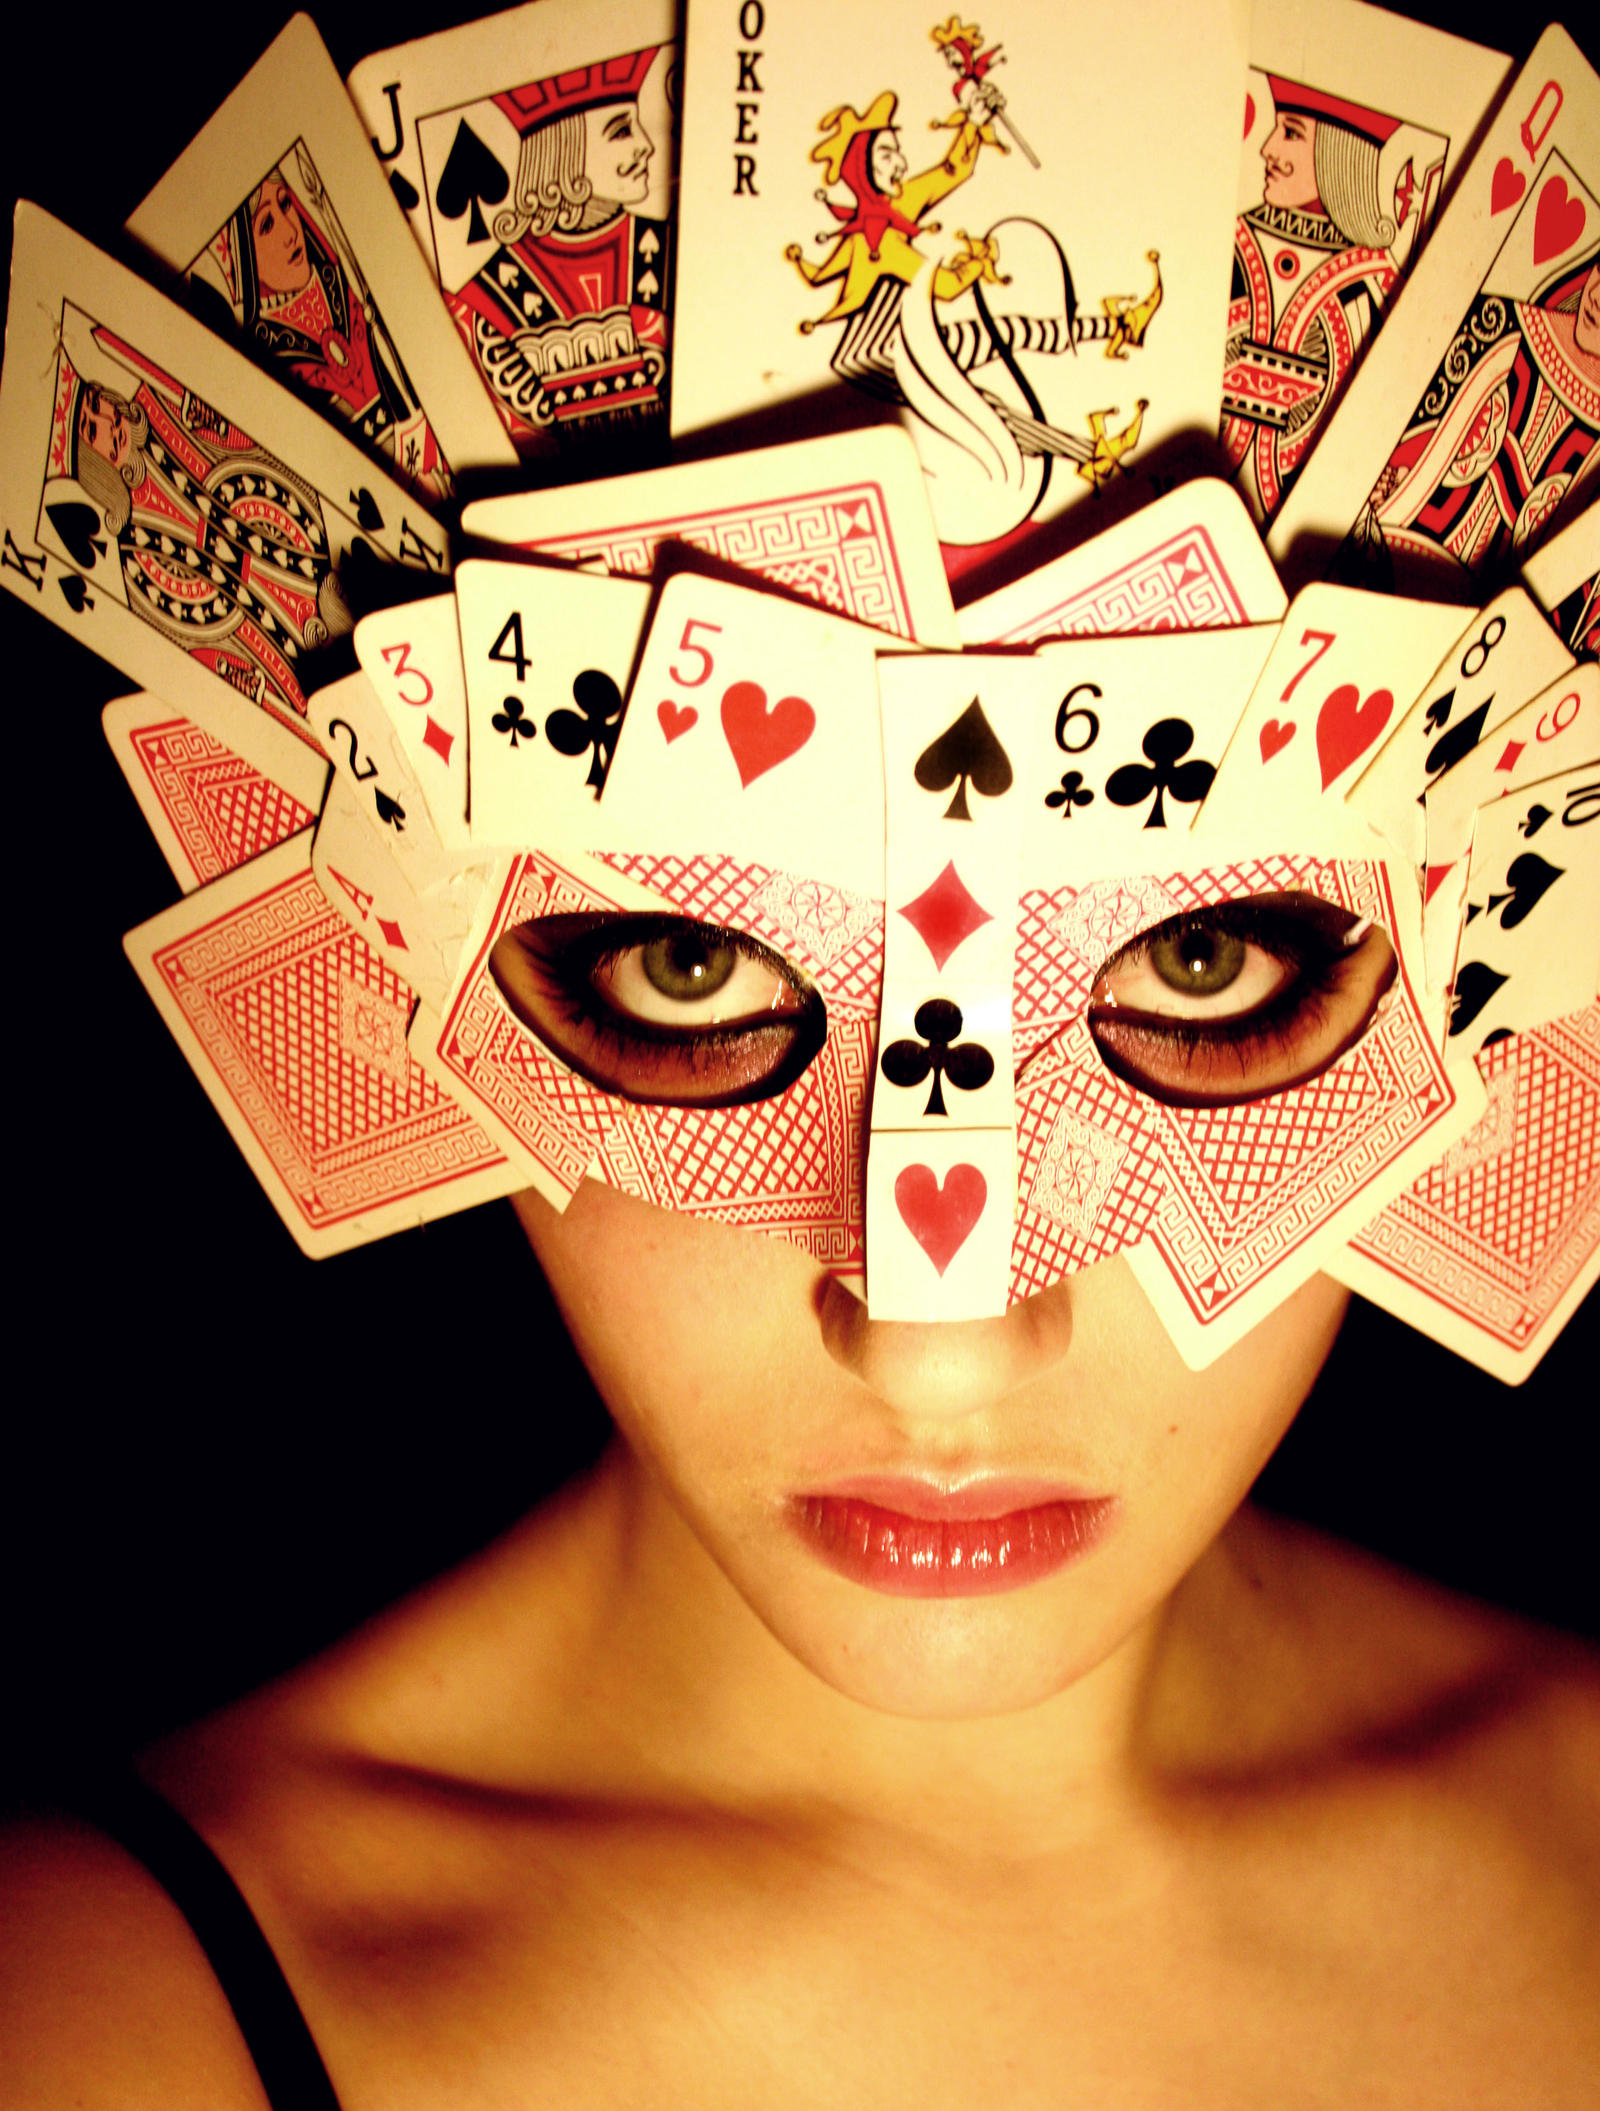 Poker face download video